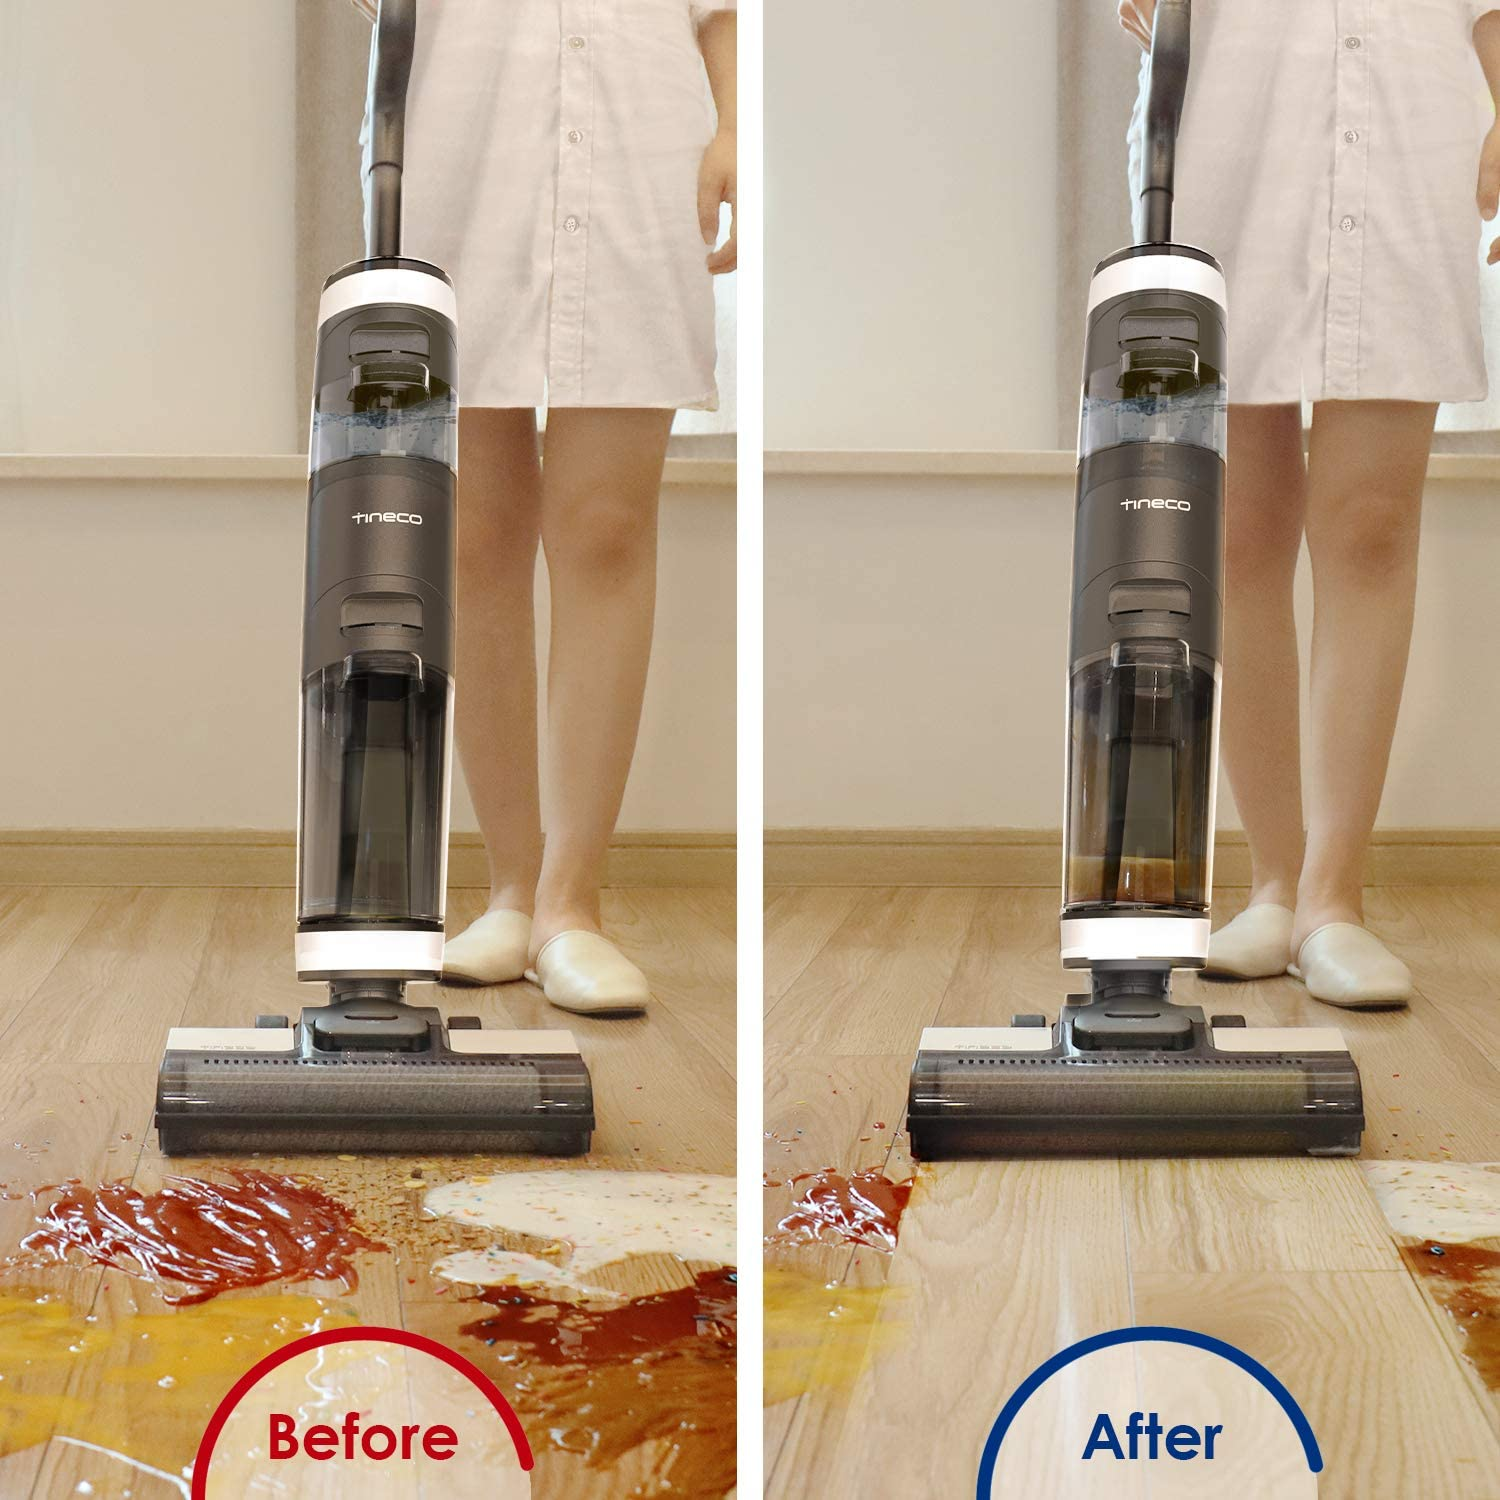 Lightweight Tineco Cordless Wet Dry Vacuum Cleaner iFLOOR3 One-Step Cleaning for Hard Floors